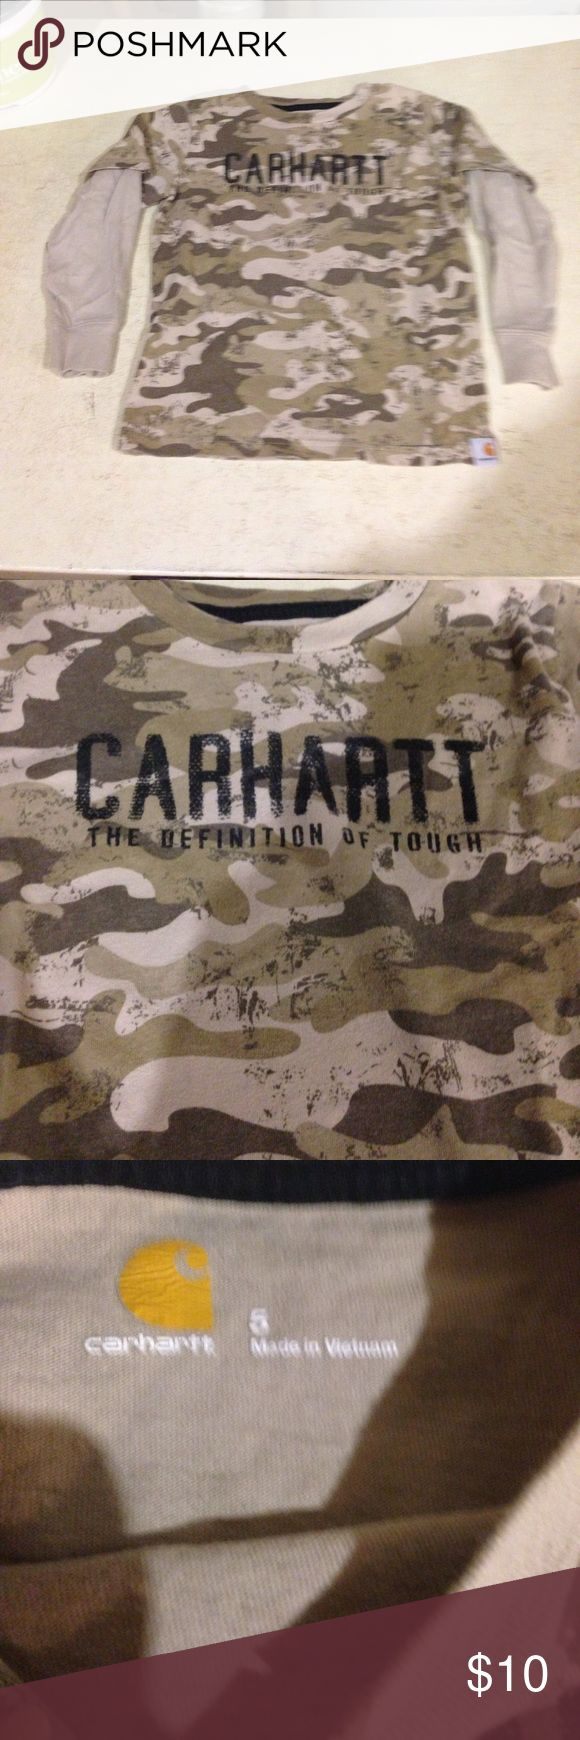 Carhartt long sleeve shirt size 5 Camouflage looking shirt that looks like a short sleeve shirt over a long sleeve shirt. Excellent used condition Carhartt Shirts & Tops Tees - Long Sleeve